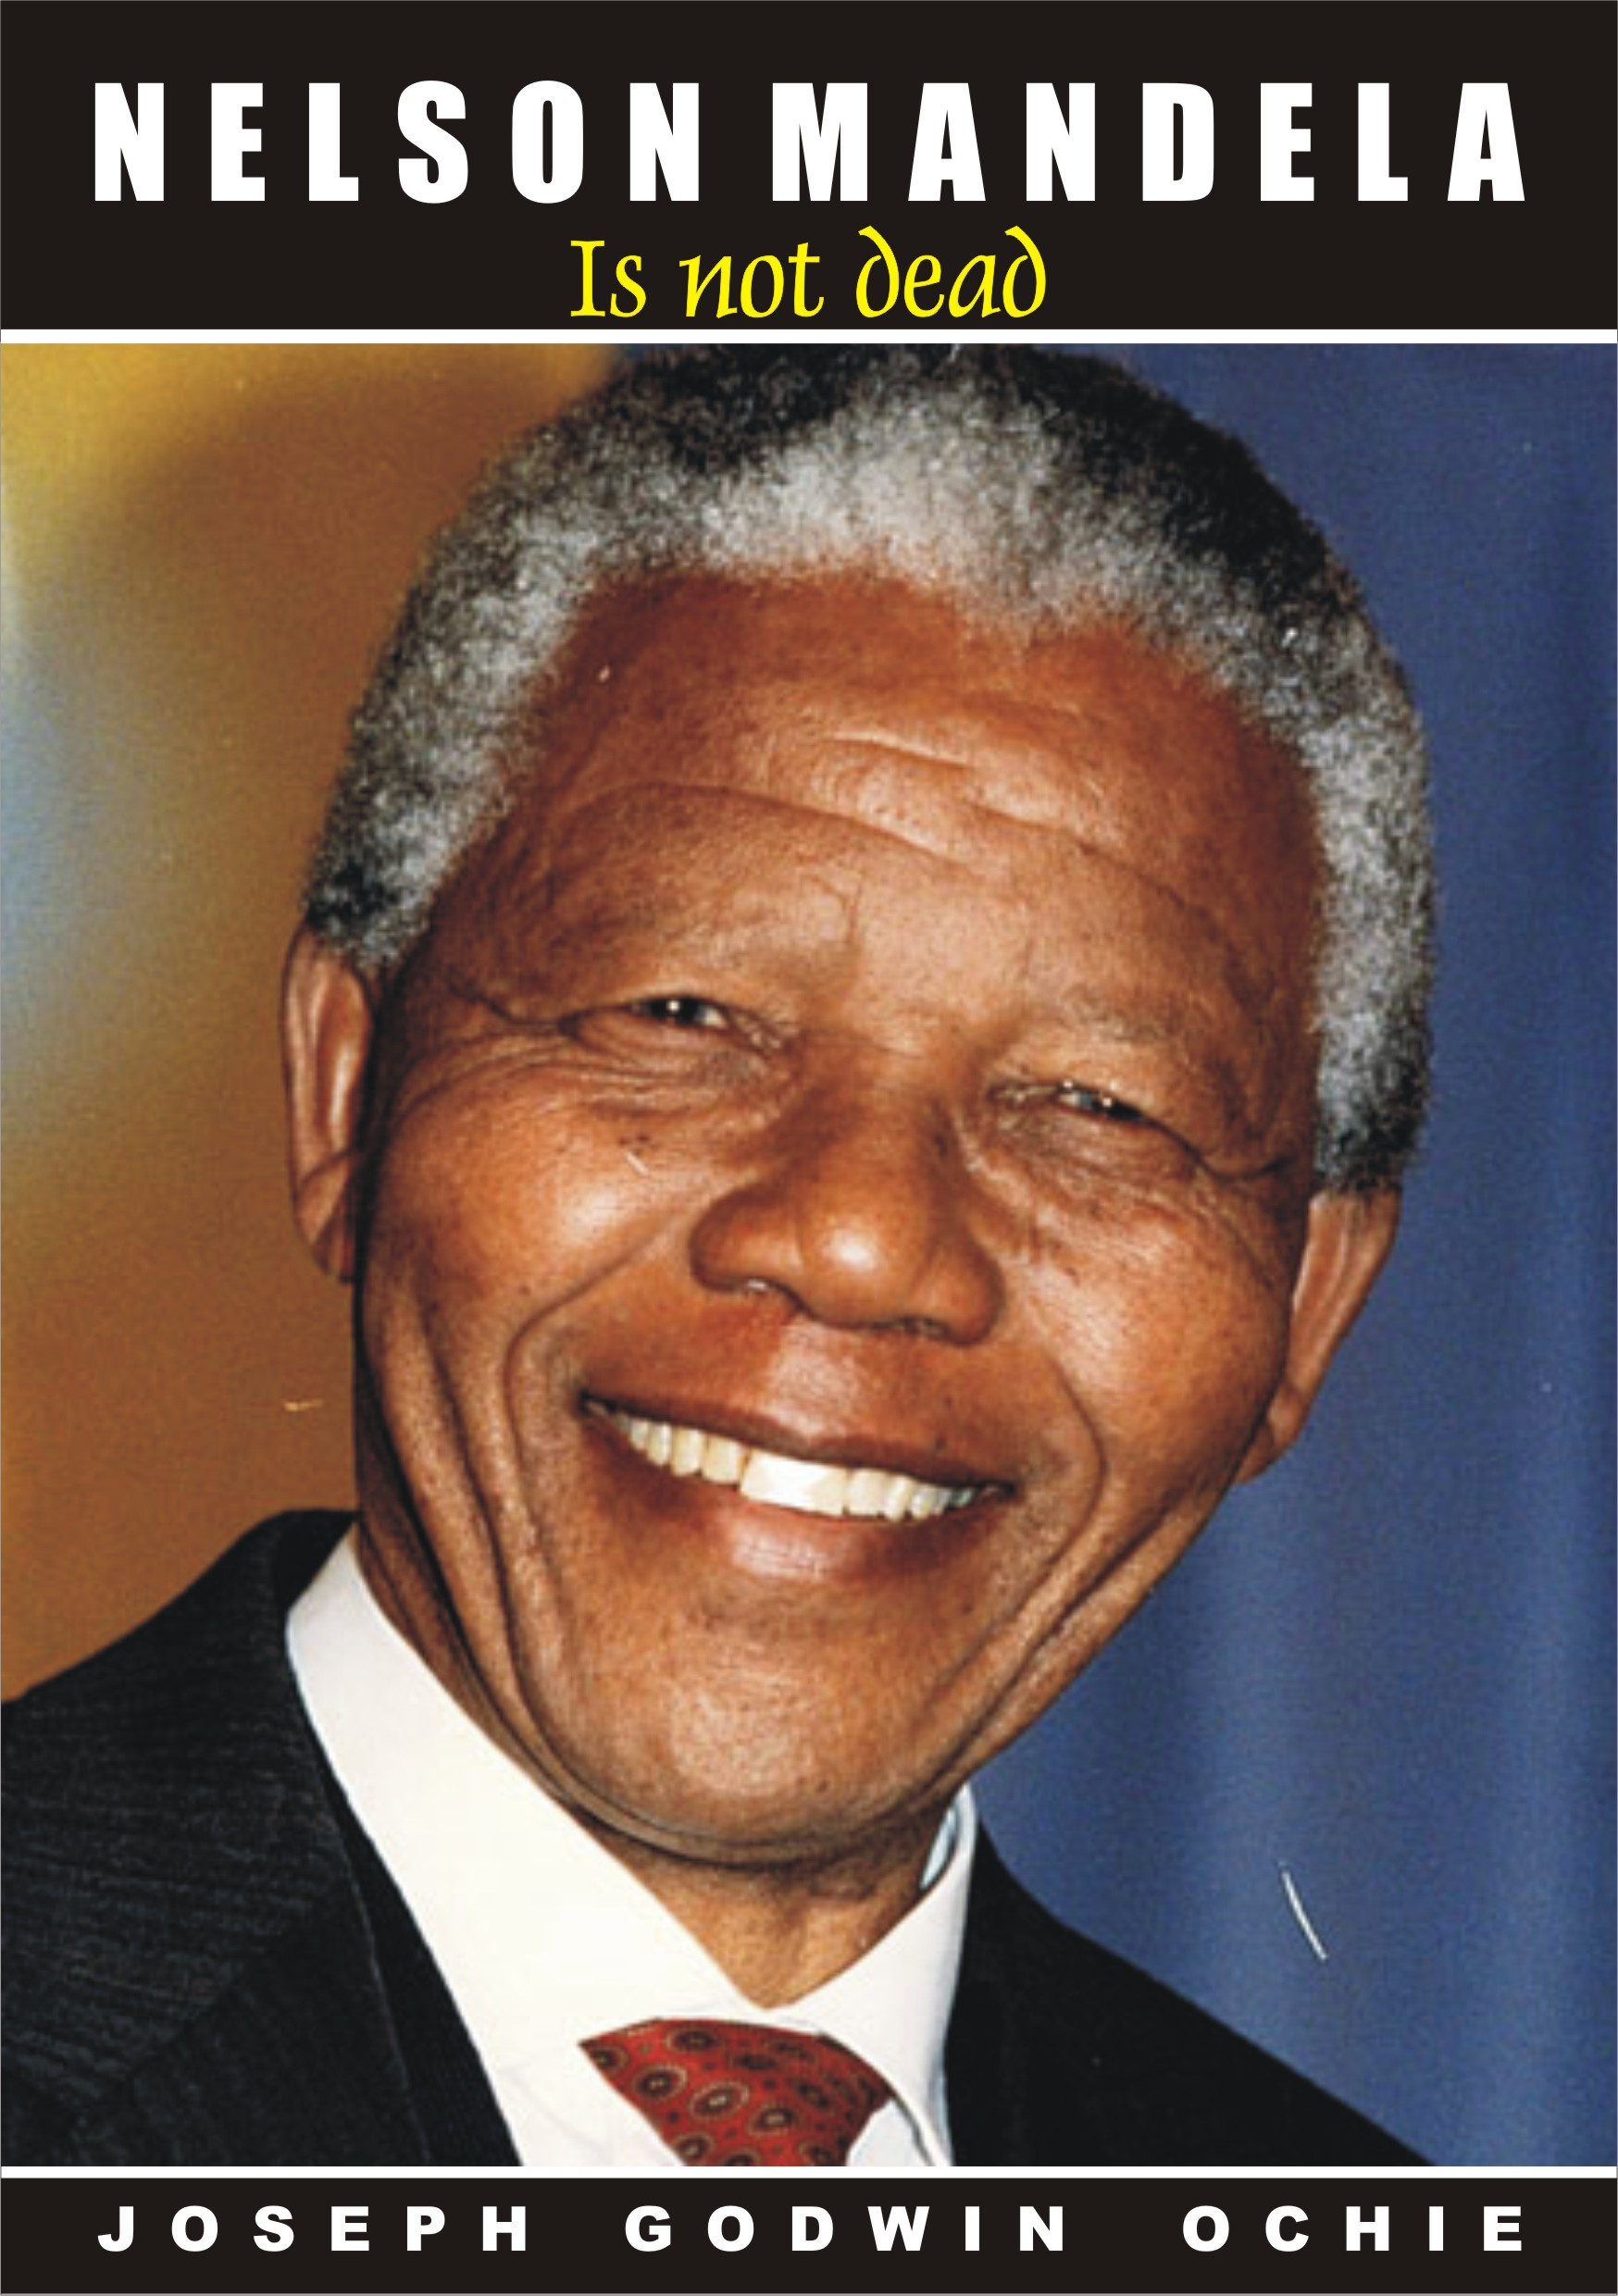 essay of nelson rolihlahla mandela Nelson rolihlahla mandela (18 july 1918 - 5 december 2013) was a south african politician and activist on april 27, 1994, he was made the first president of south africa elected in a fully represented democratic election.